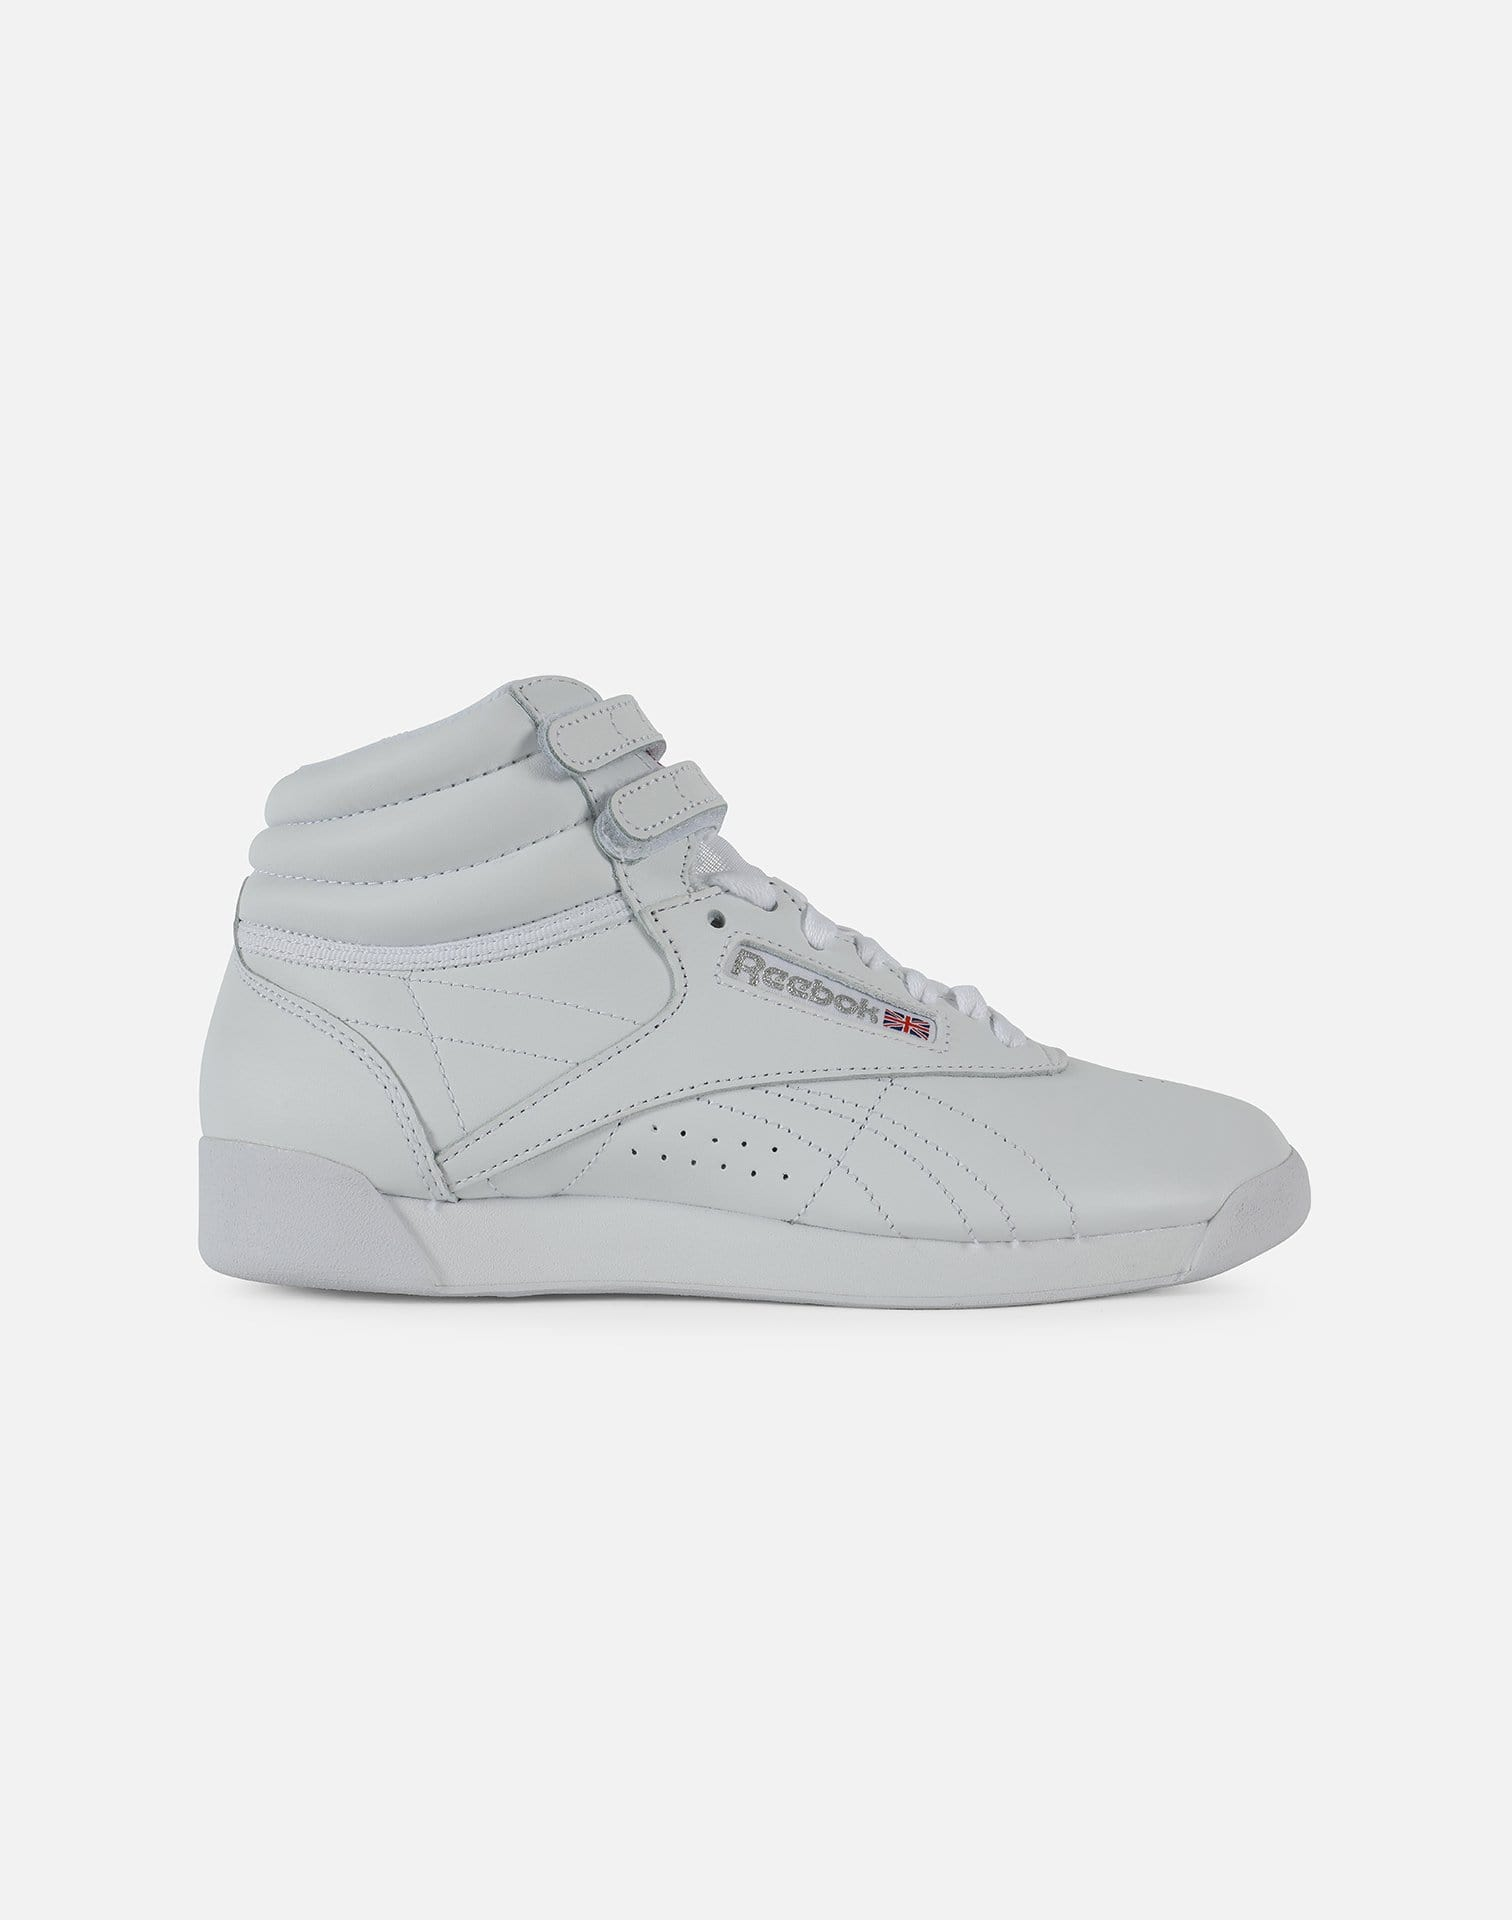 Reebok Women's Freestyle Hi Leather